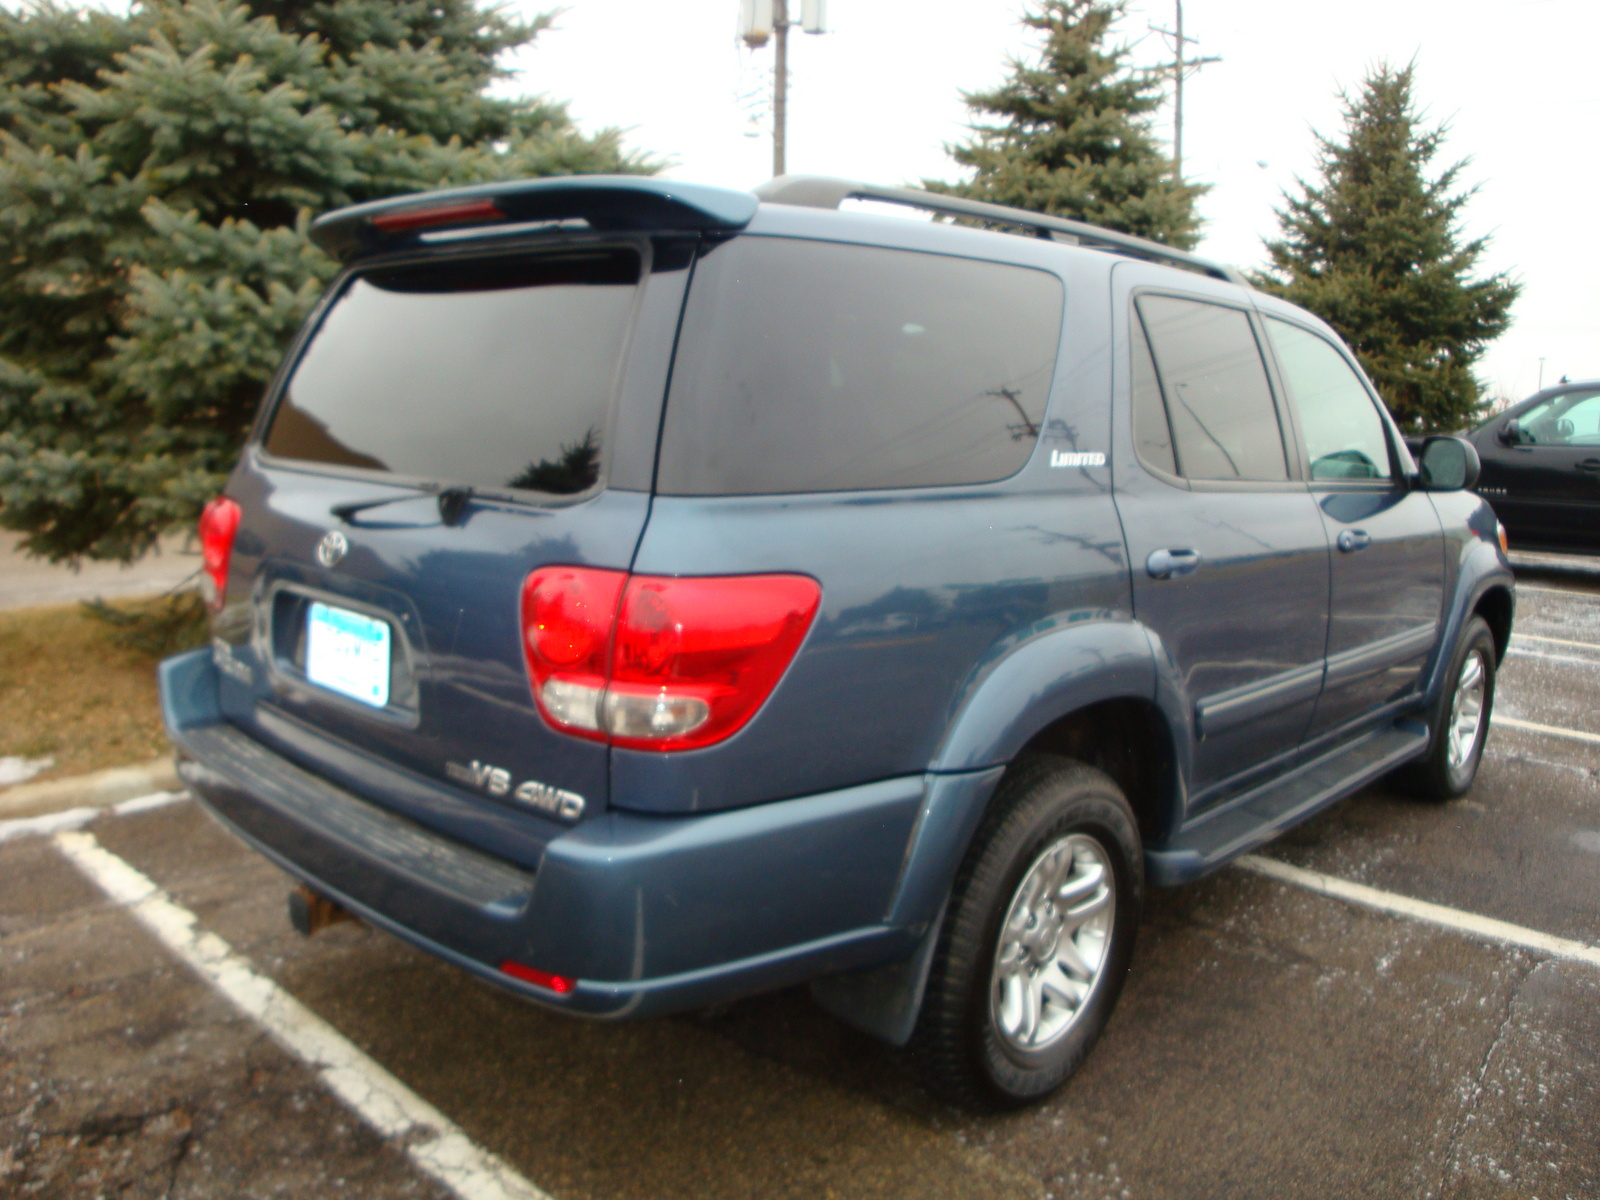 toyota highlander research all models and prices msn autos autos post. Black Bedroom Furniture Sets. Home Design Ideas